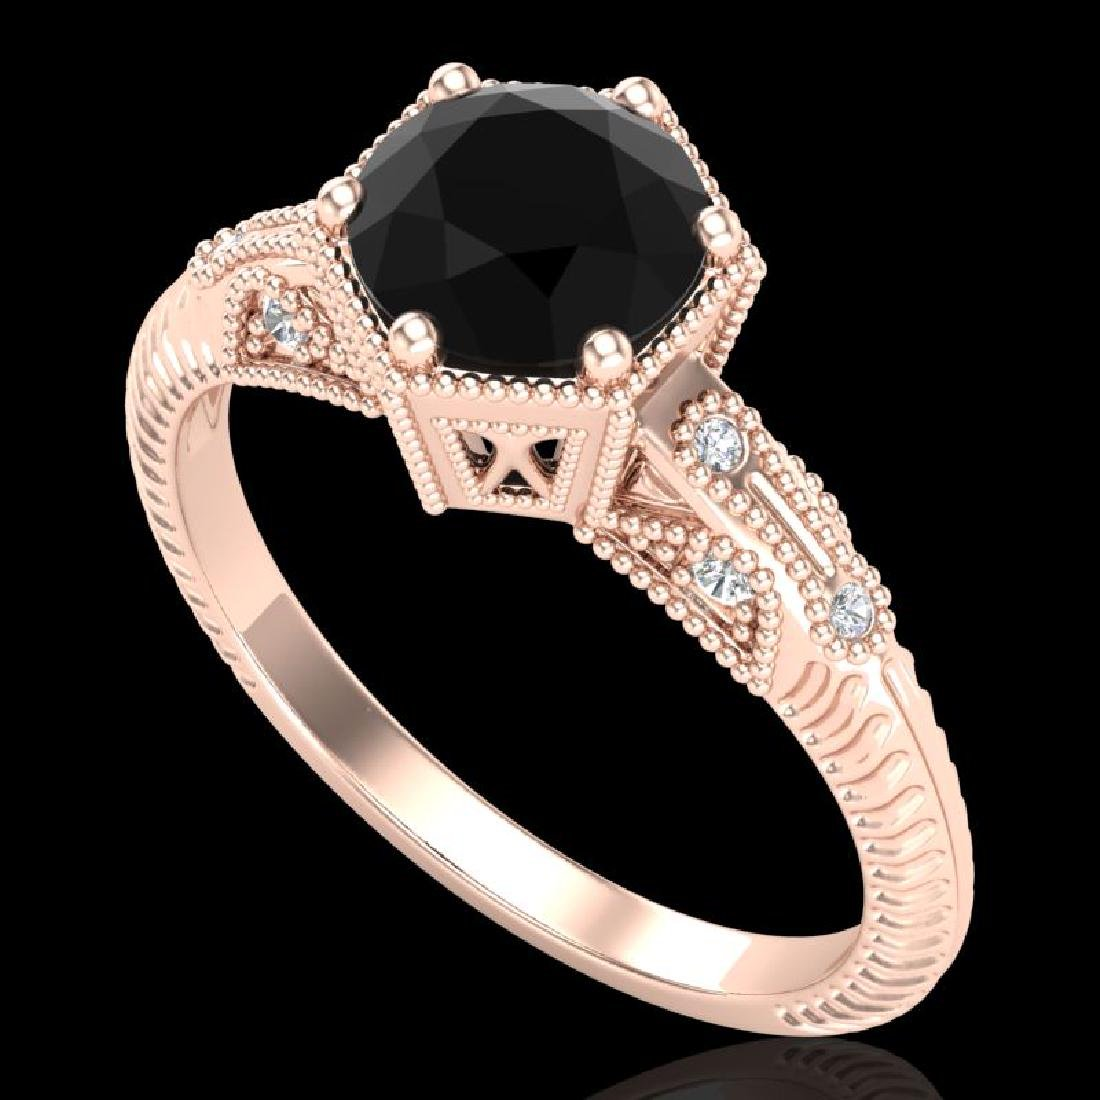 1.17 CTW Fancy Black Diamond Solitaire Engagement Art